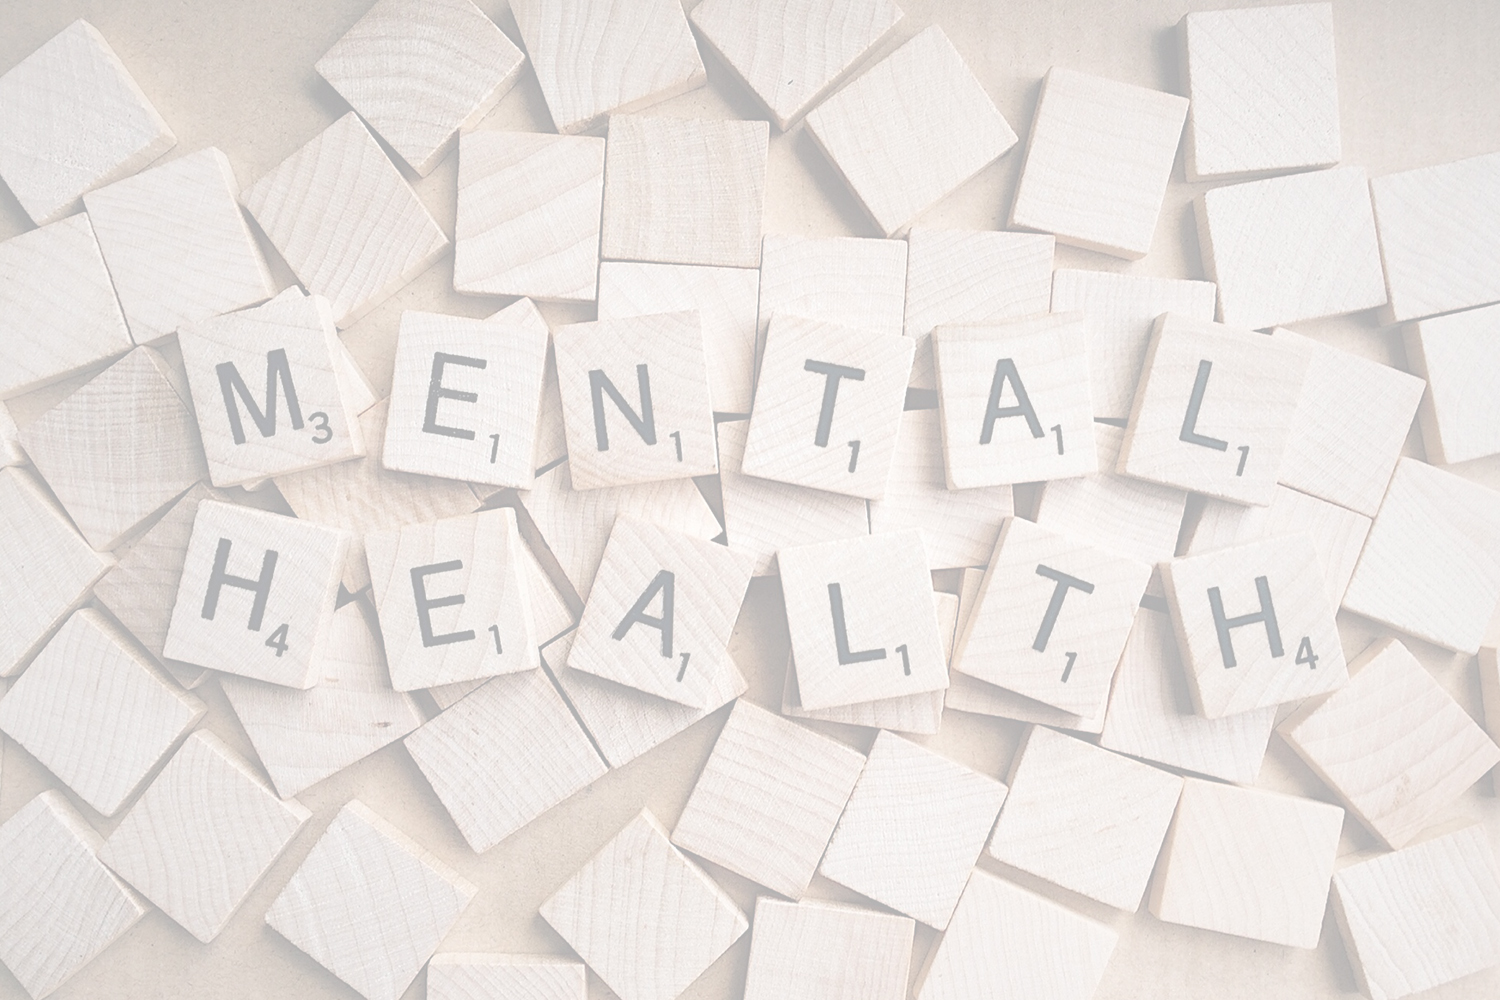 Why Global Mental Health Matters (A Personal Story)